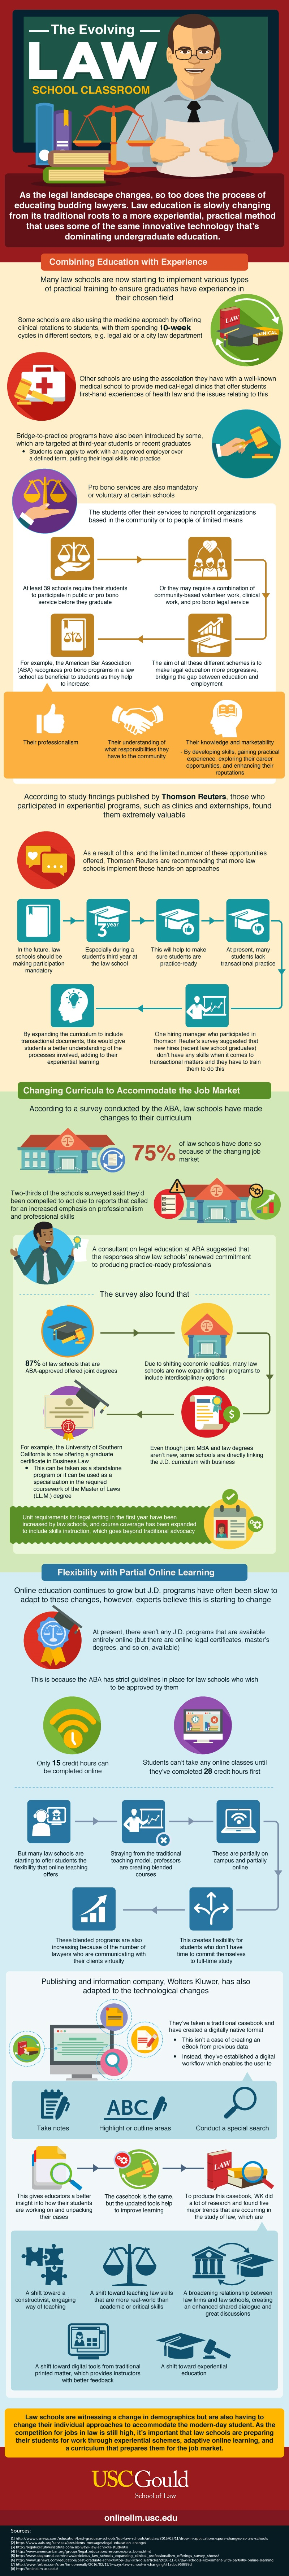 An infographic about the evolving law school classroom by USC Gould School of Law